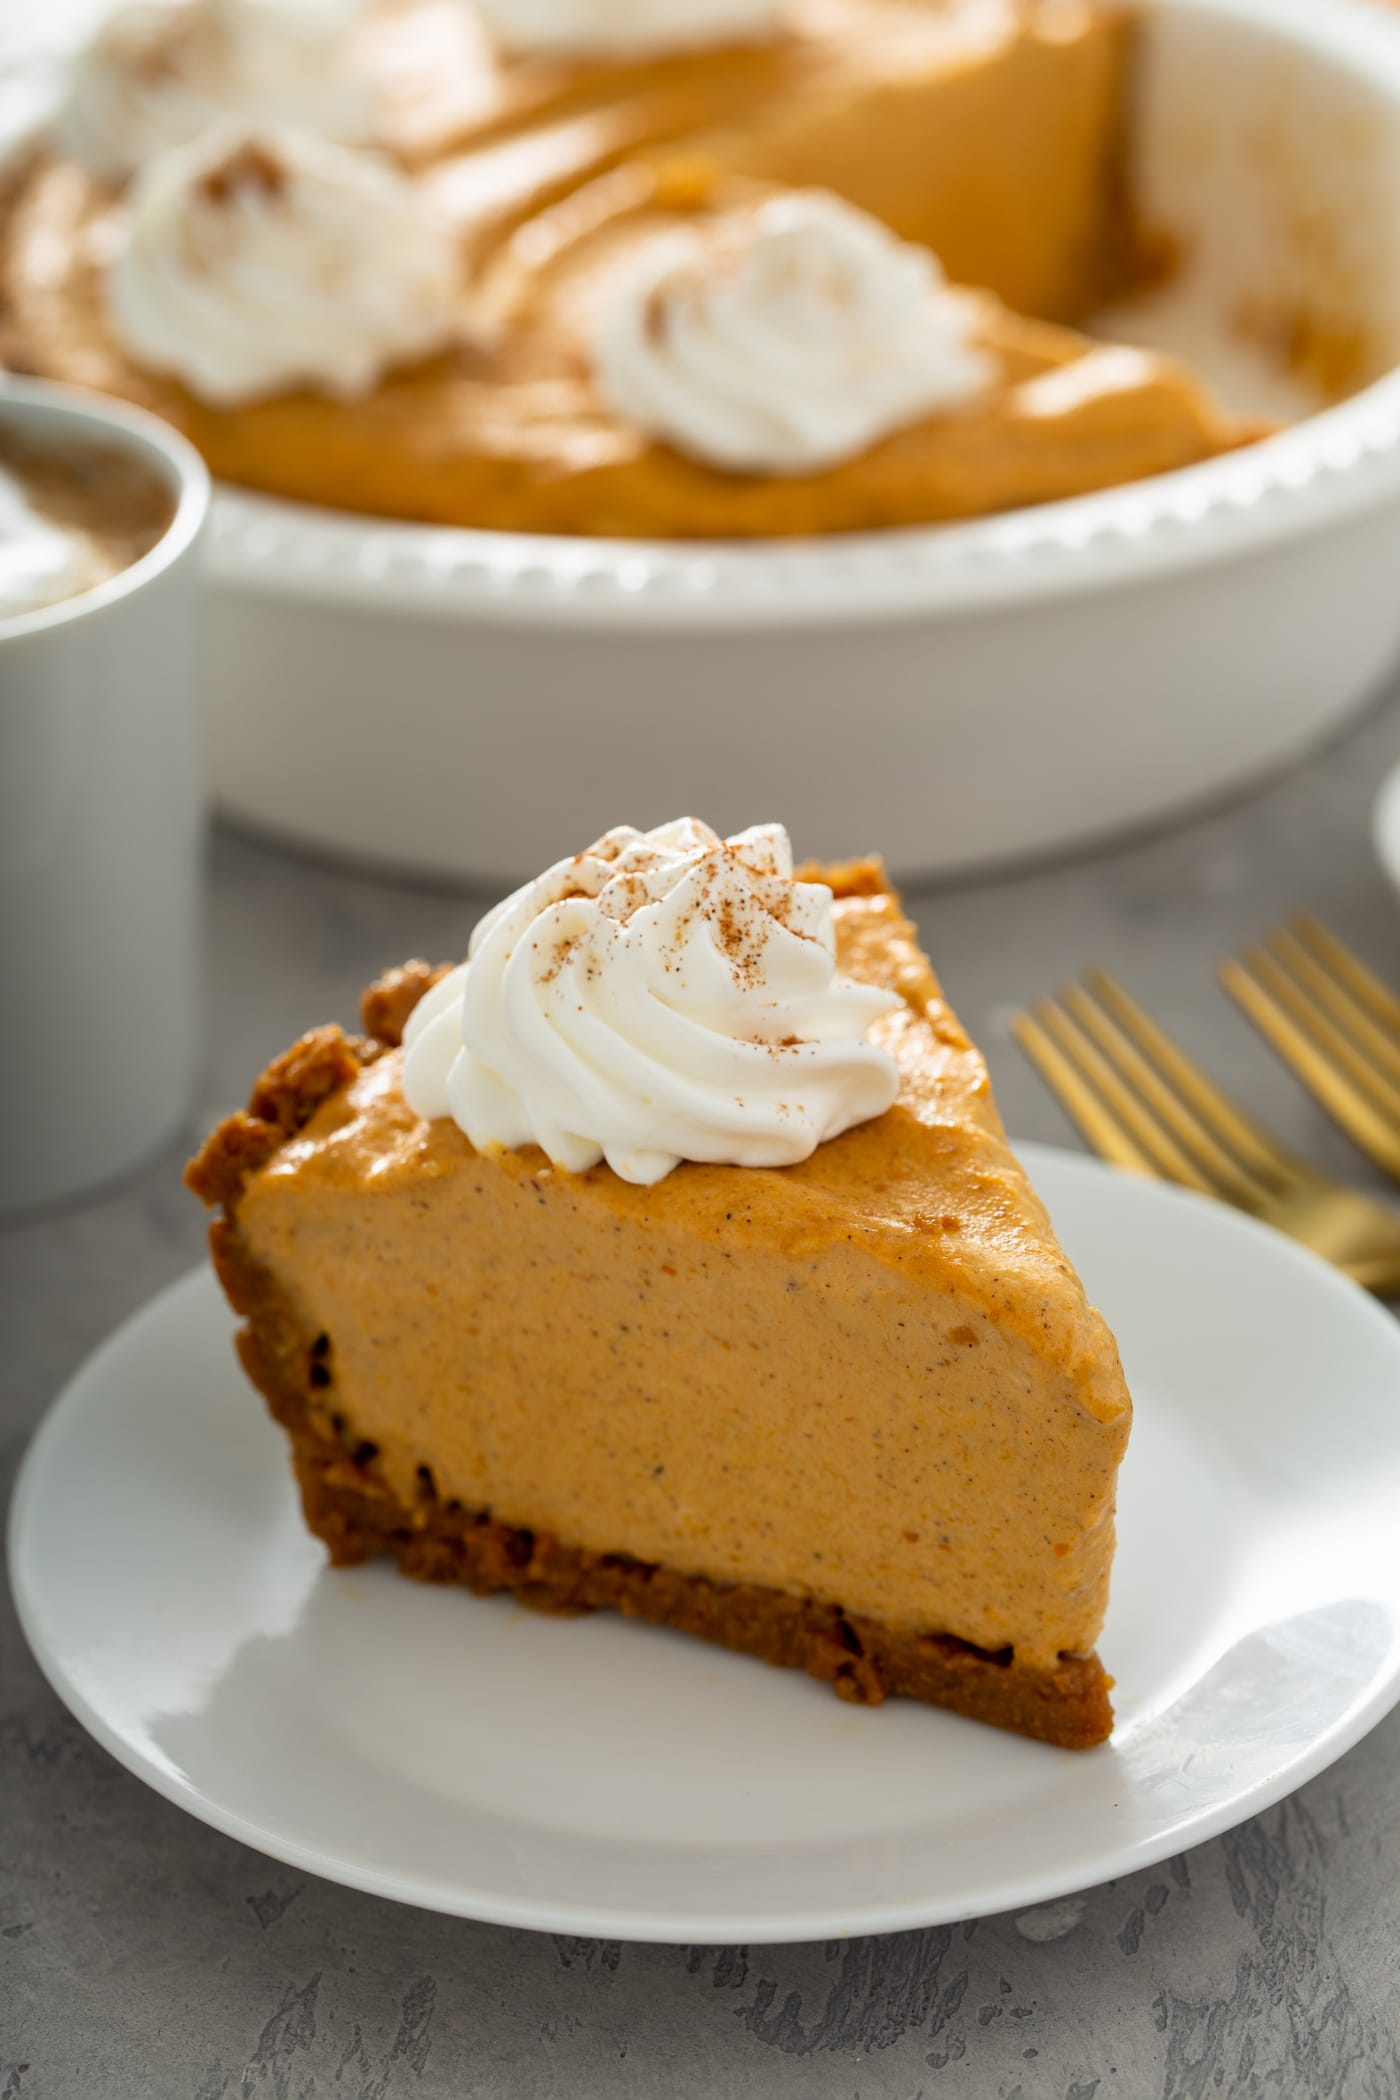 A piece of pumpkin ice cream pie on a white dessert plate. The pie has a dollop of whipped cream sprinkled with cinnamon on top. There are two forks beside the plate, and the rest of the pumpkin ice cream pie in a pie dish is in the background.